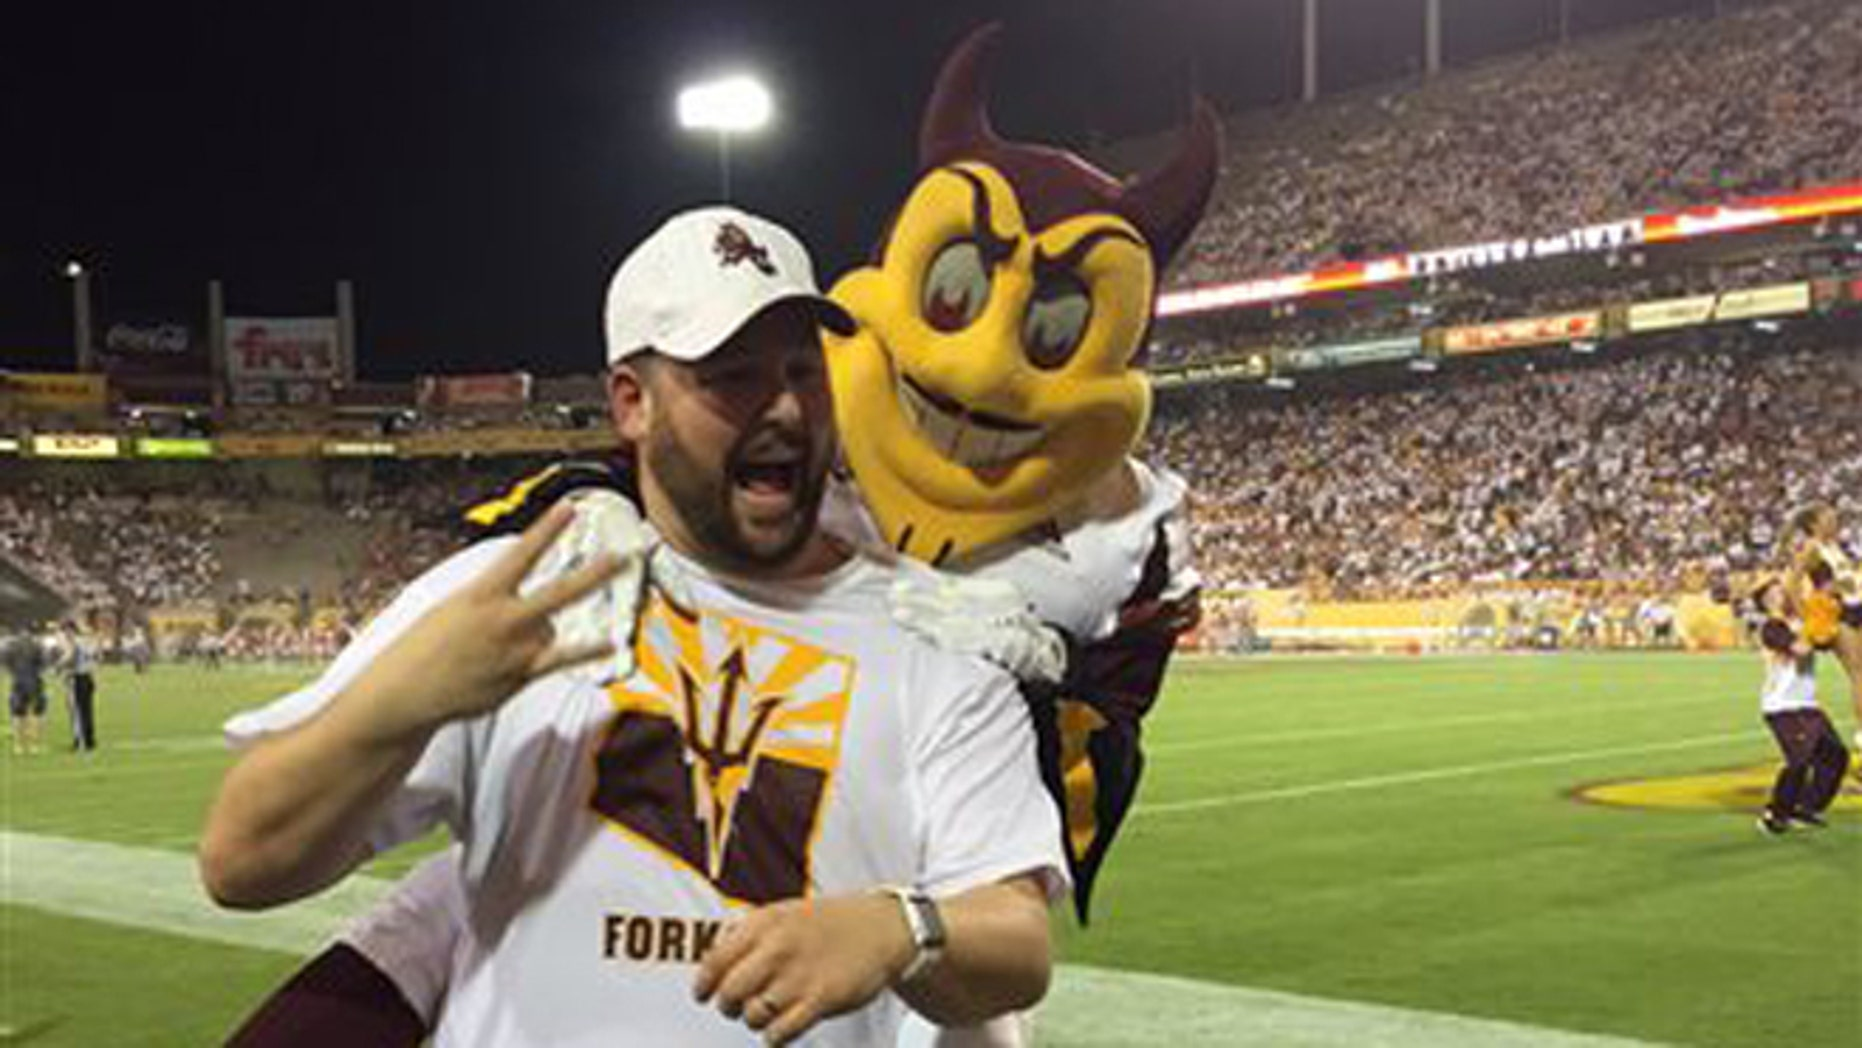 Sept. 18, 2015: This photo courtesy of David Schapira shows ASUs mascot Sparky jumping on David Schapira at a Arizona State University football game in Tempe, Ariz. Schapira, a Tempe City Councilman, has filed a claim against Arizona State University for injuries suffered when the school mascot leapt on him.